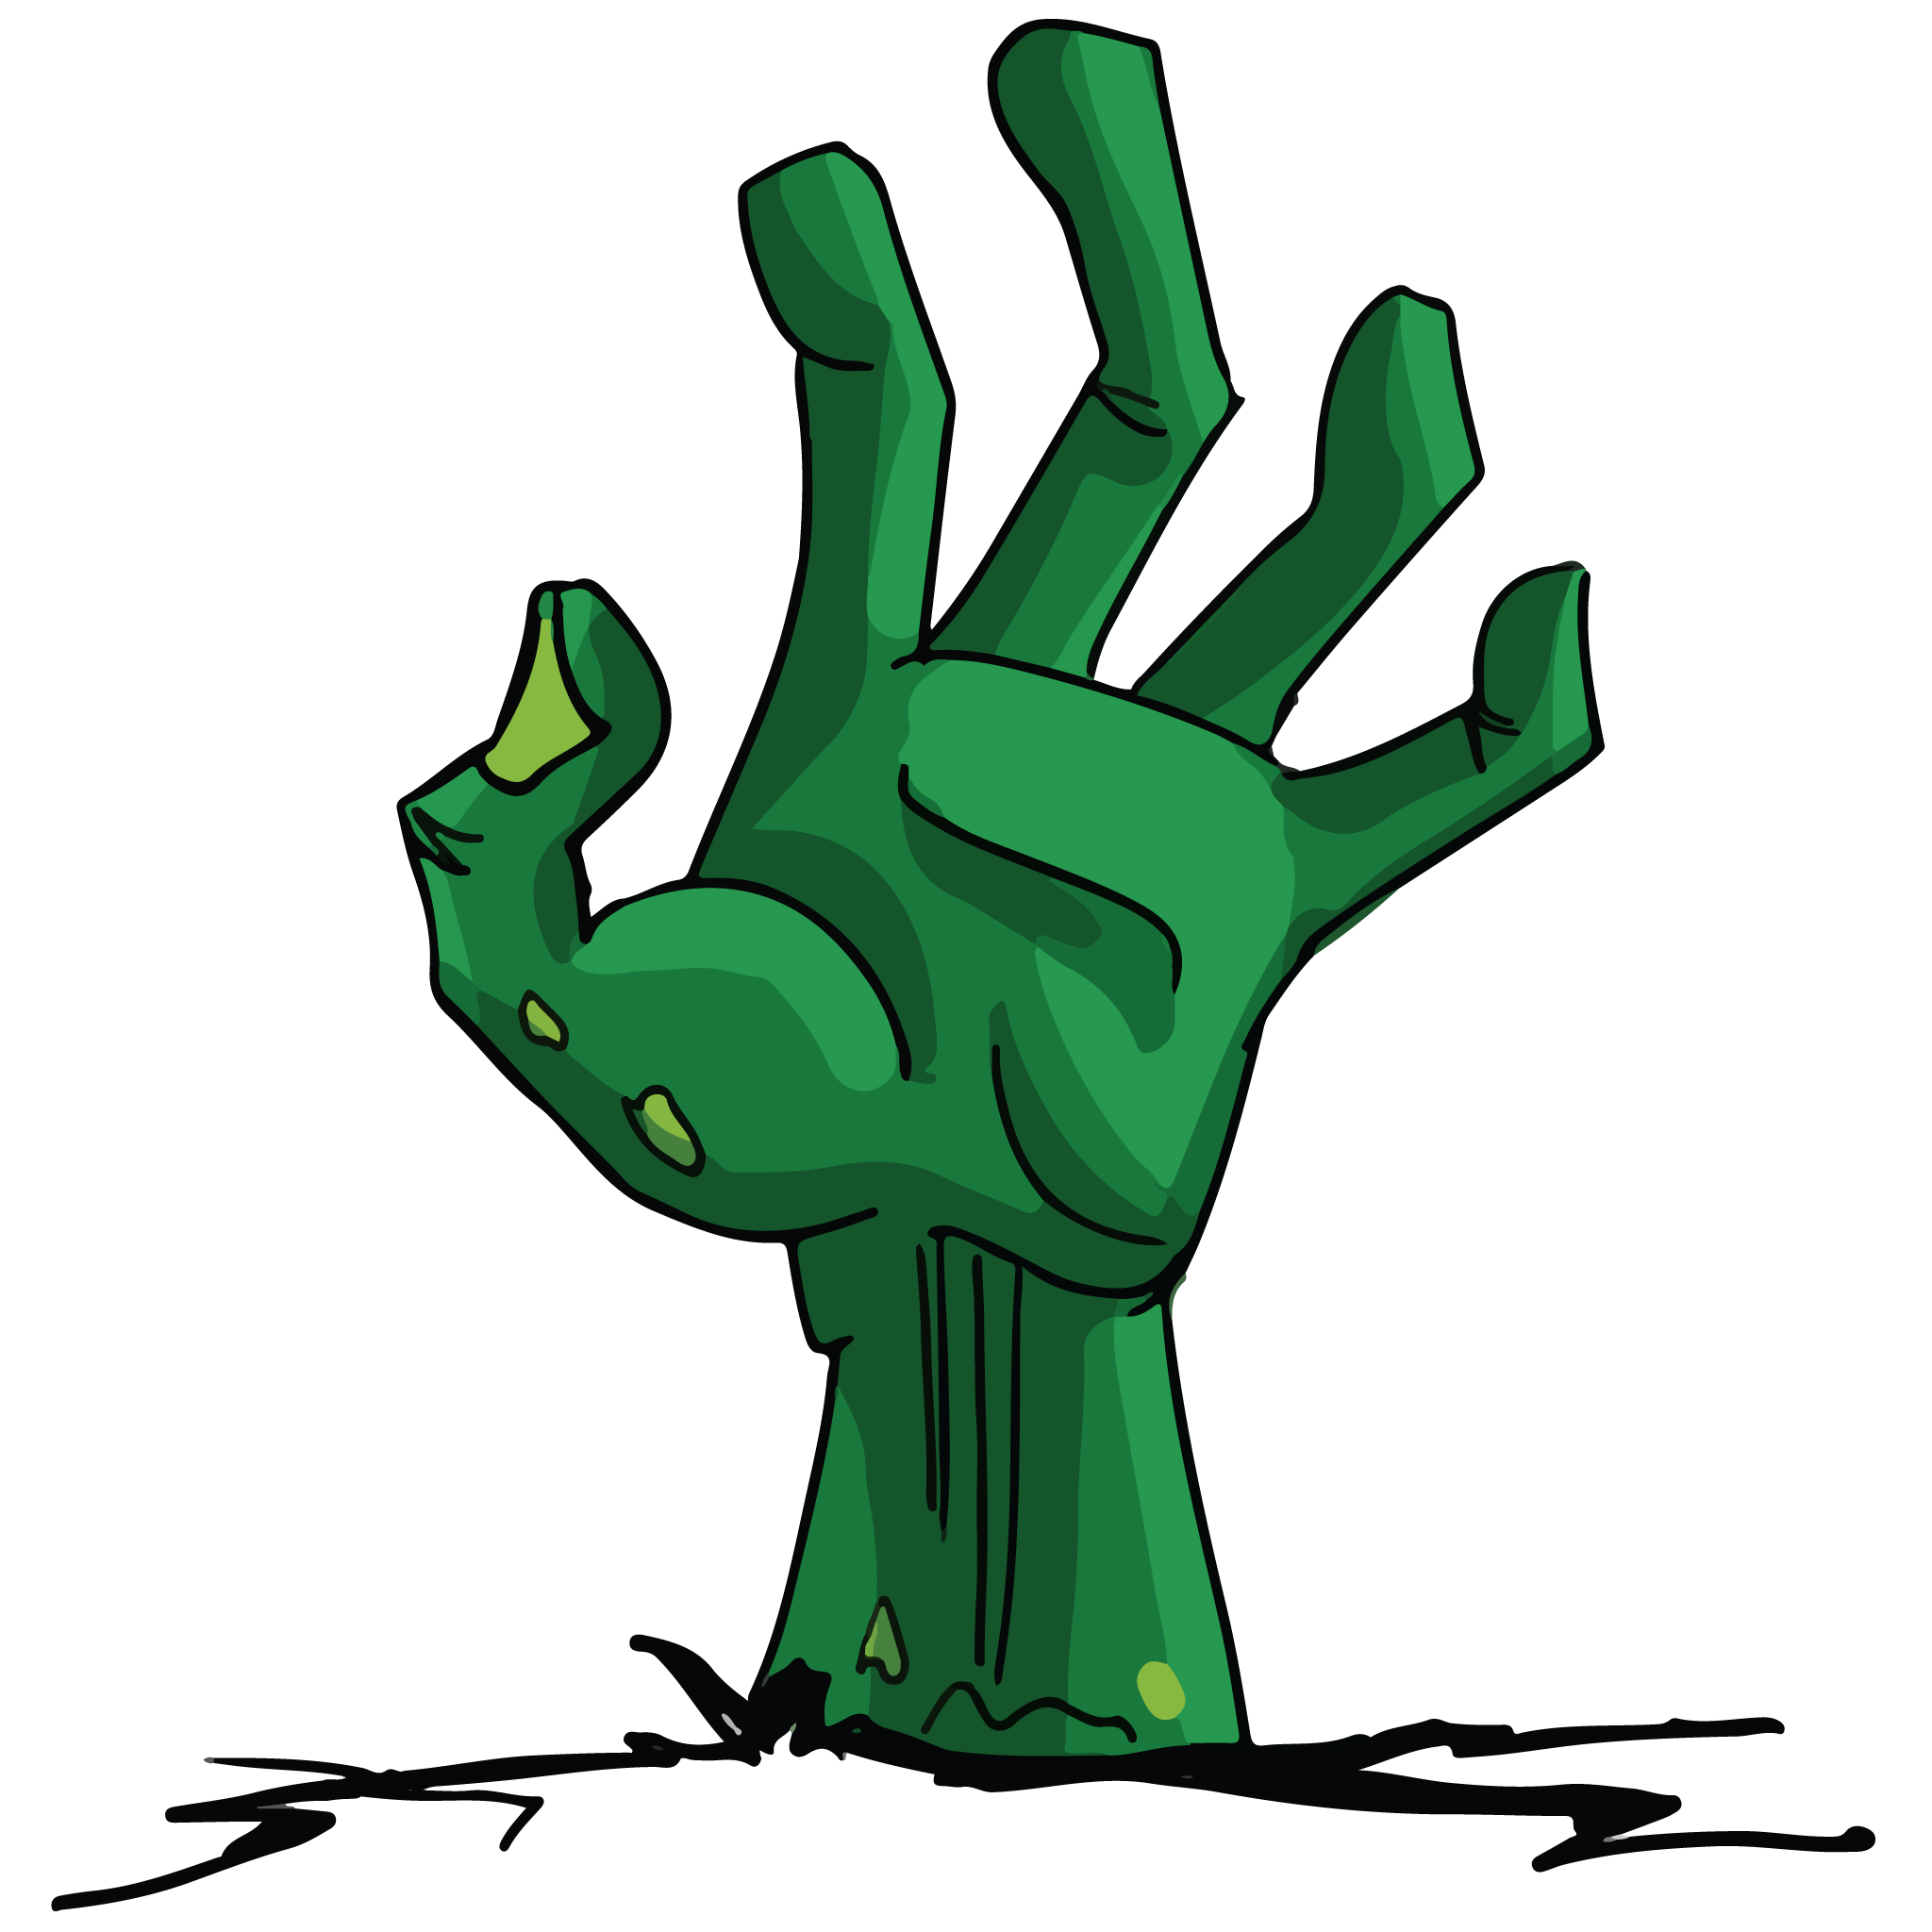 Zombie clipart green hand. Buy comic artwork for